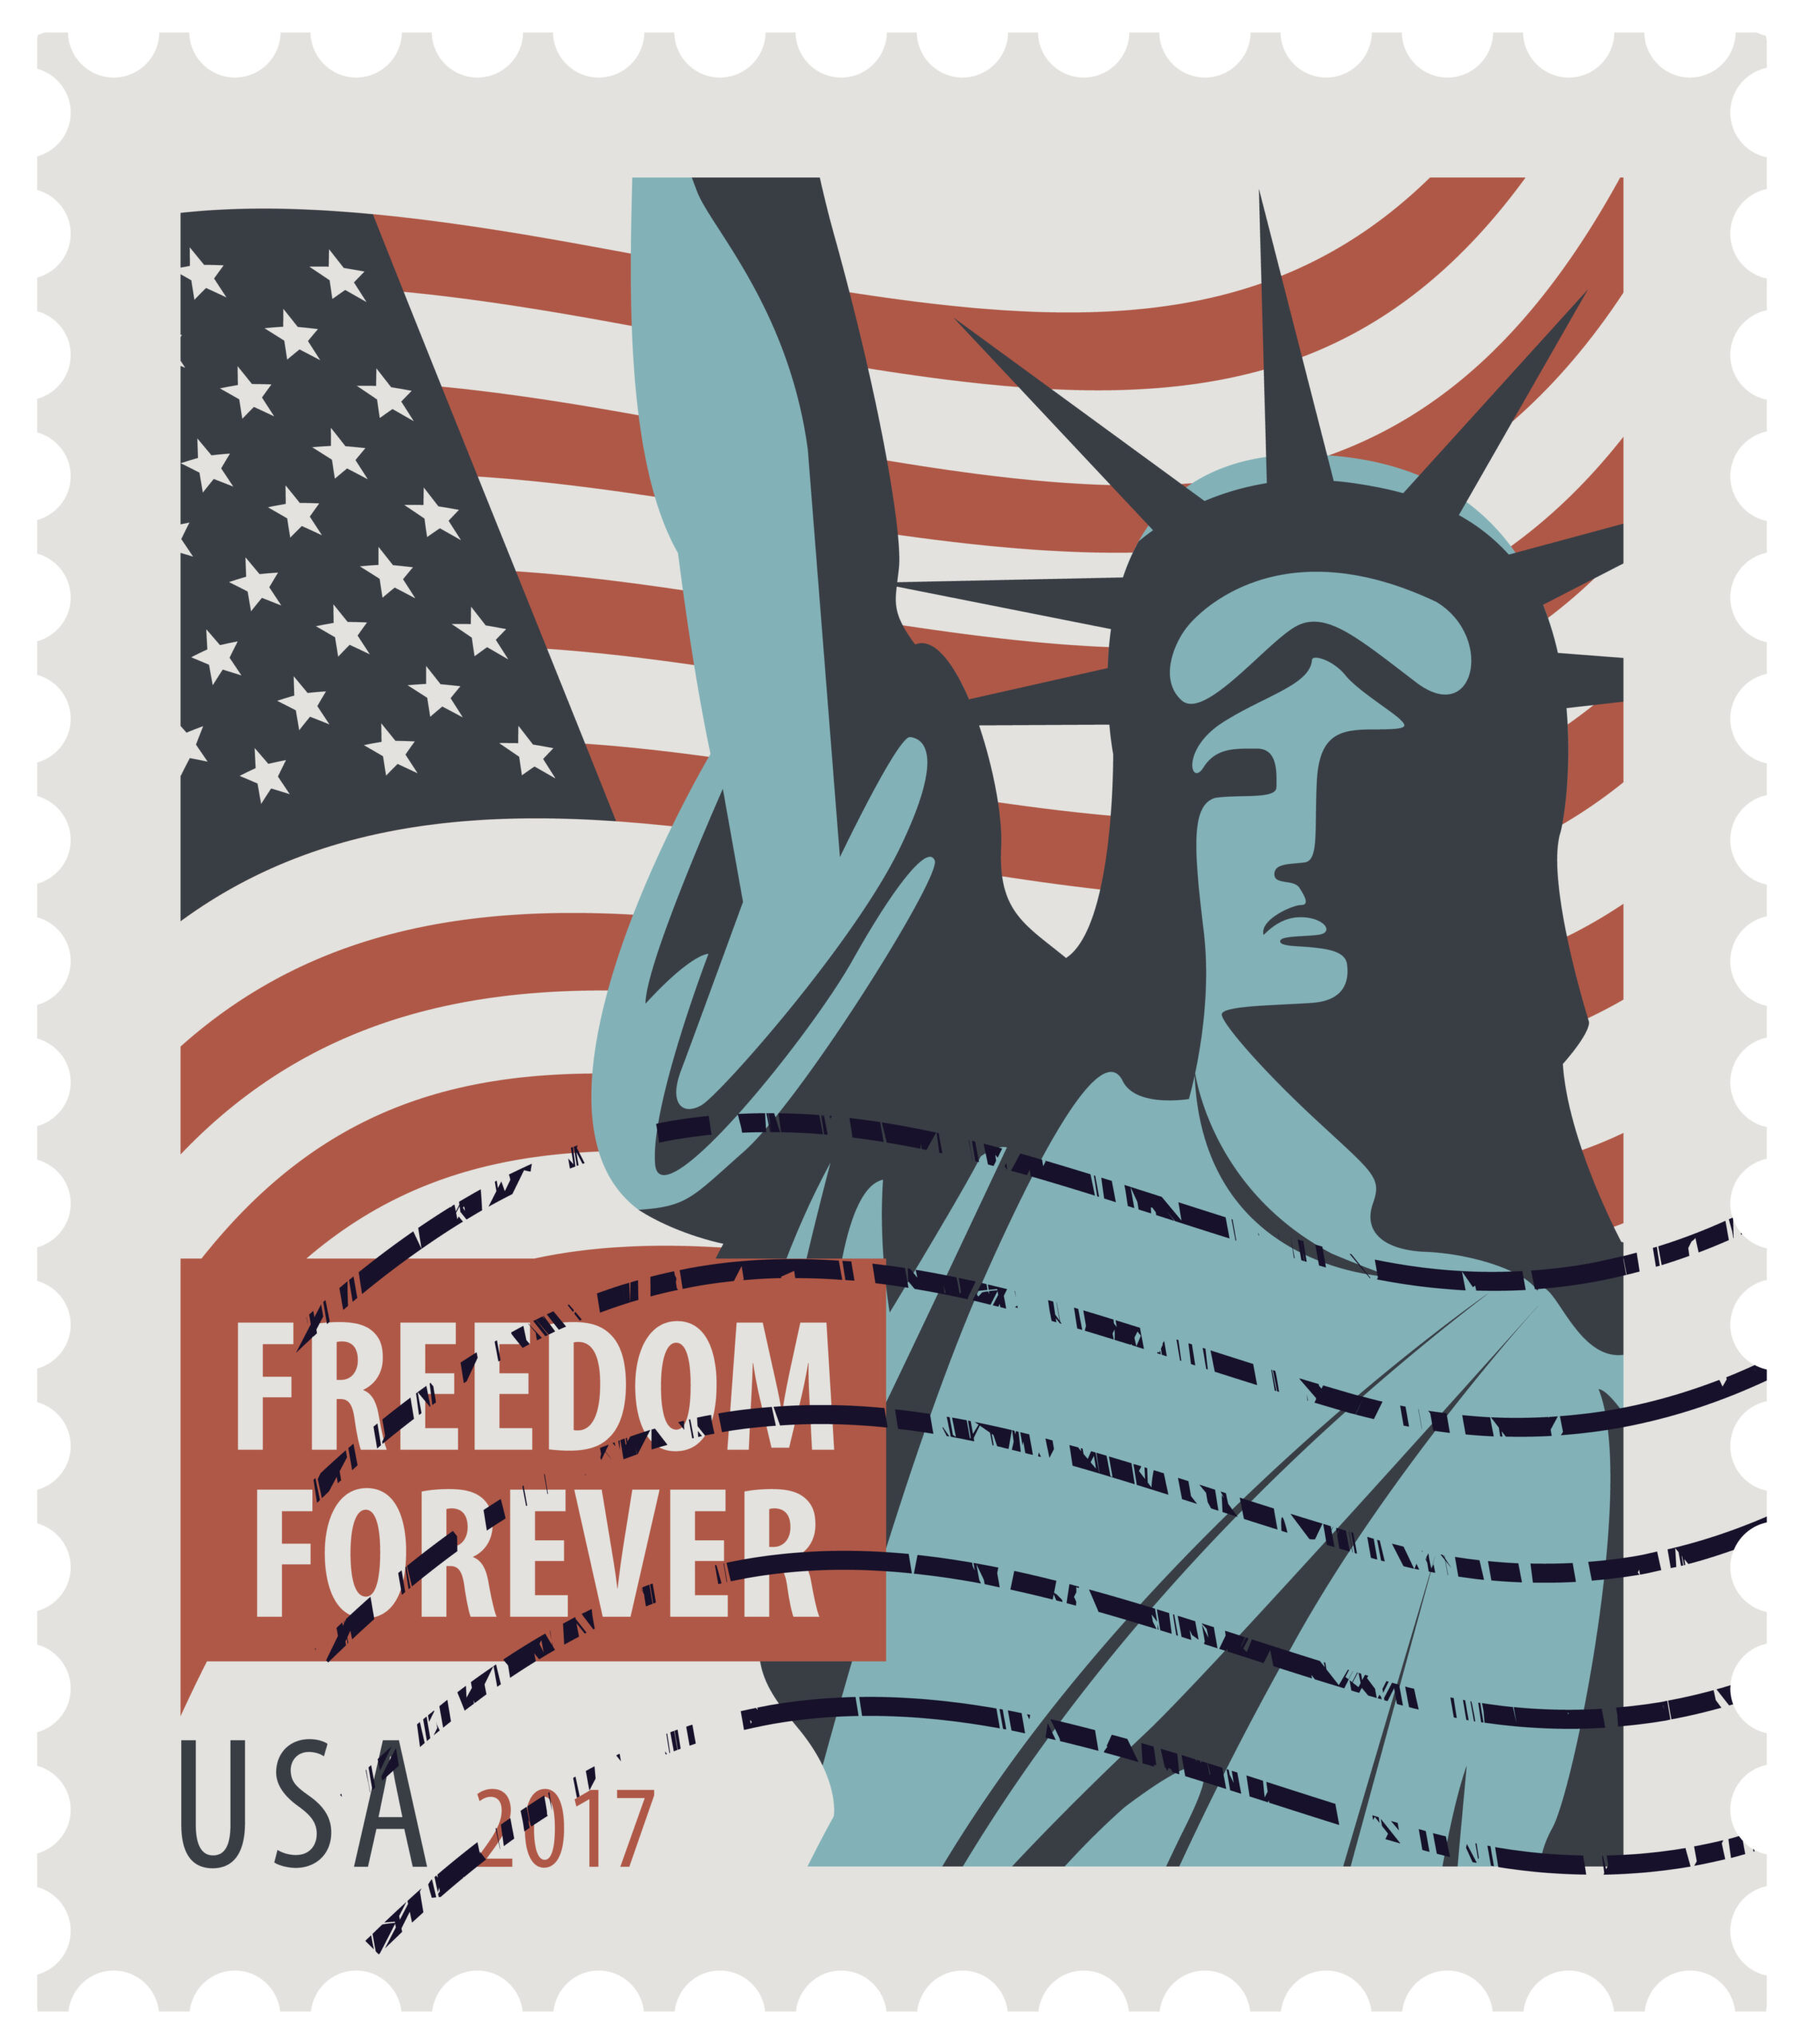 Postage stamp with New York Statue of Liberty, the flag of United States of America and the word freedom forever. Vector illustration of USA stamp with a rubber stamp.